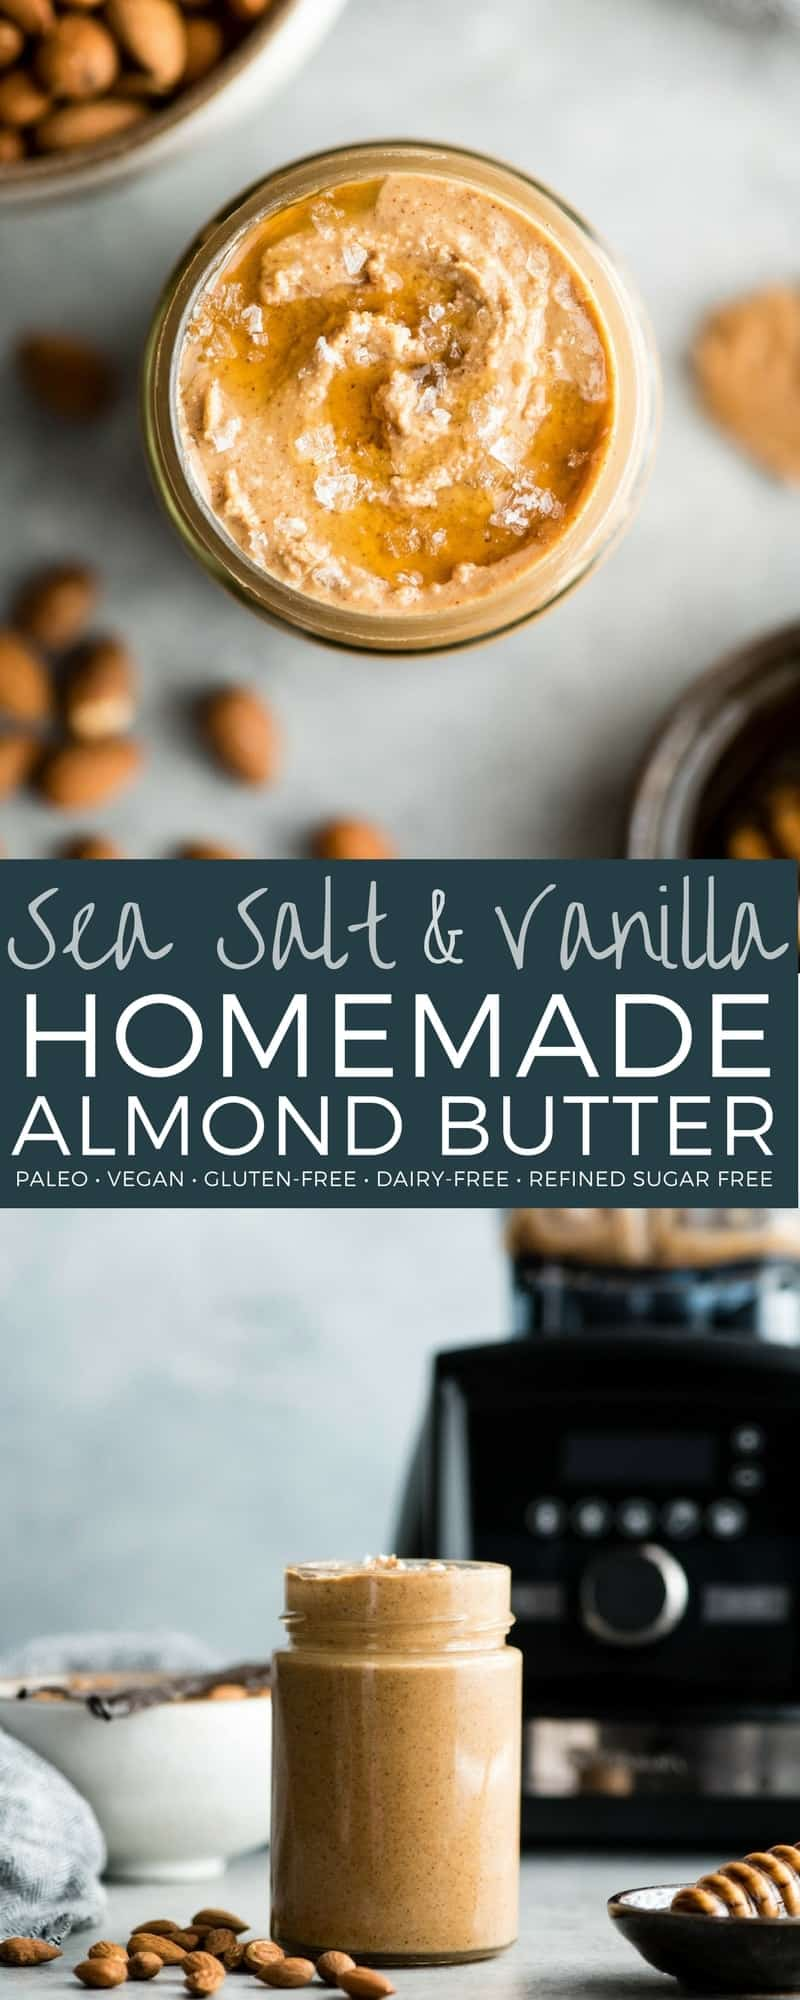 This Homemade Vanilla Almond Butter with Sea Salt & Honey is so easy & delicious you will never settle for store-bought varieties again! Made with only 5 ingredients in 5 minutes in the Vitamix Blender! #almondbutter #homemade #vanilla #honey #paleo #vegan #glutenfree #vitamix #blender #dairyfree #feedfeed @vitamix @thefeedfeed